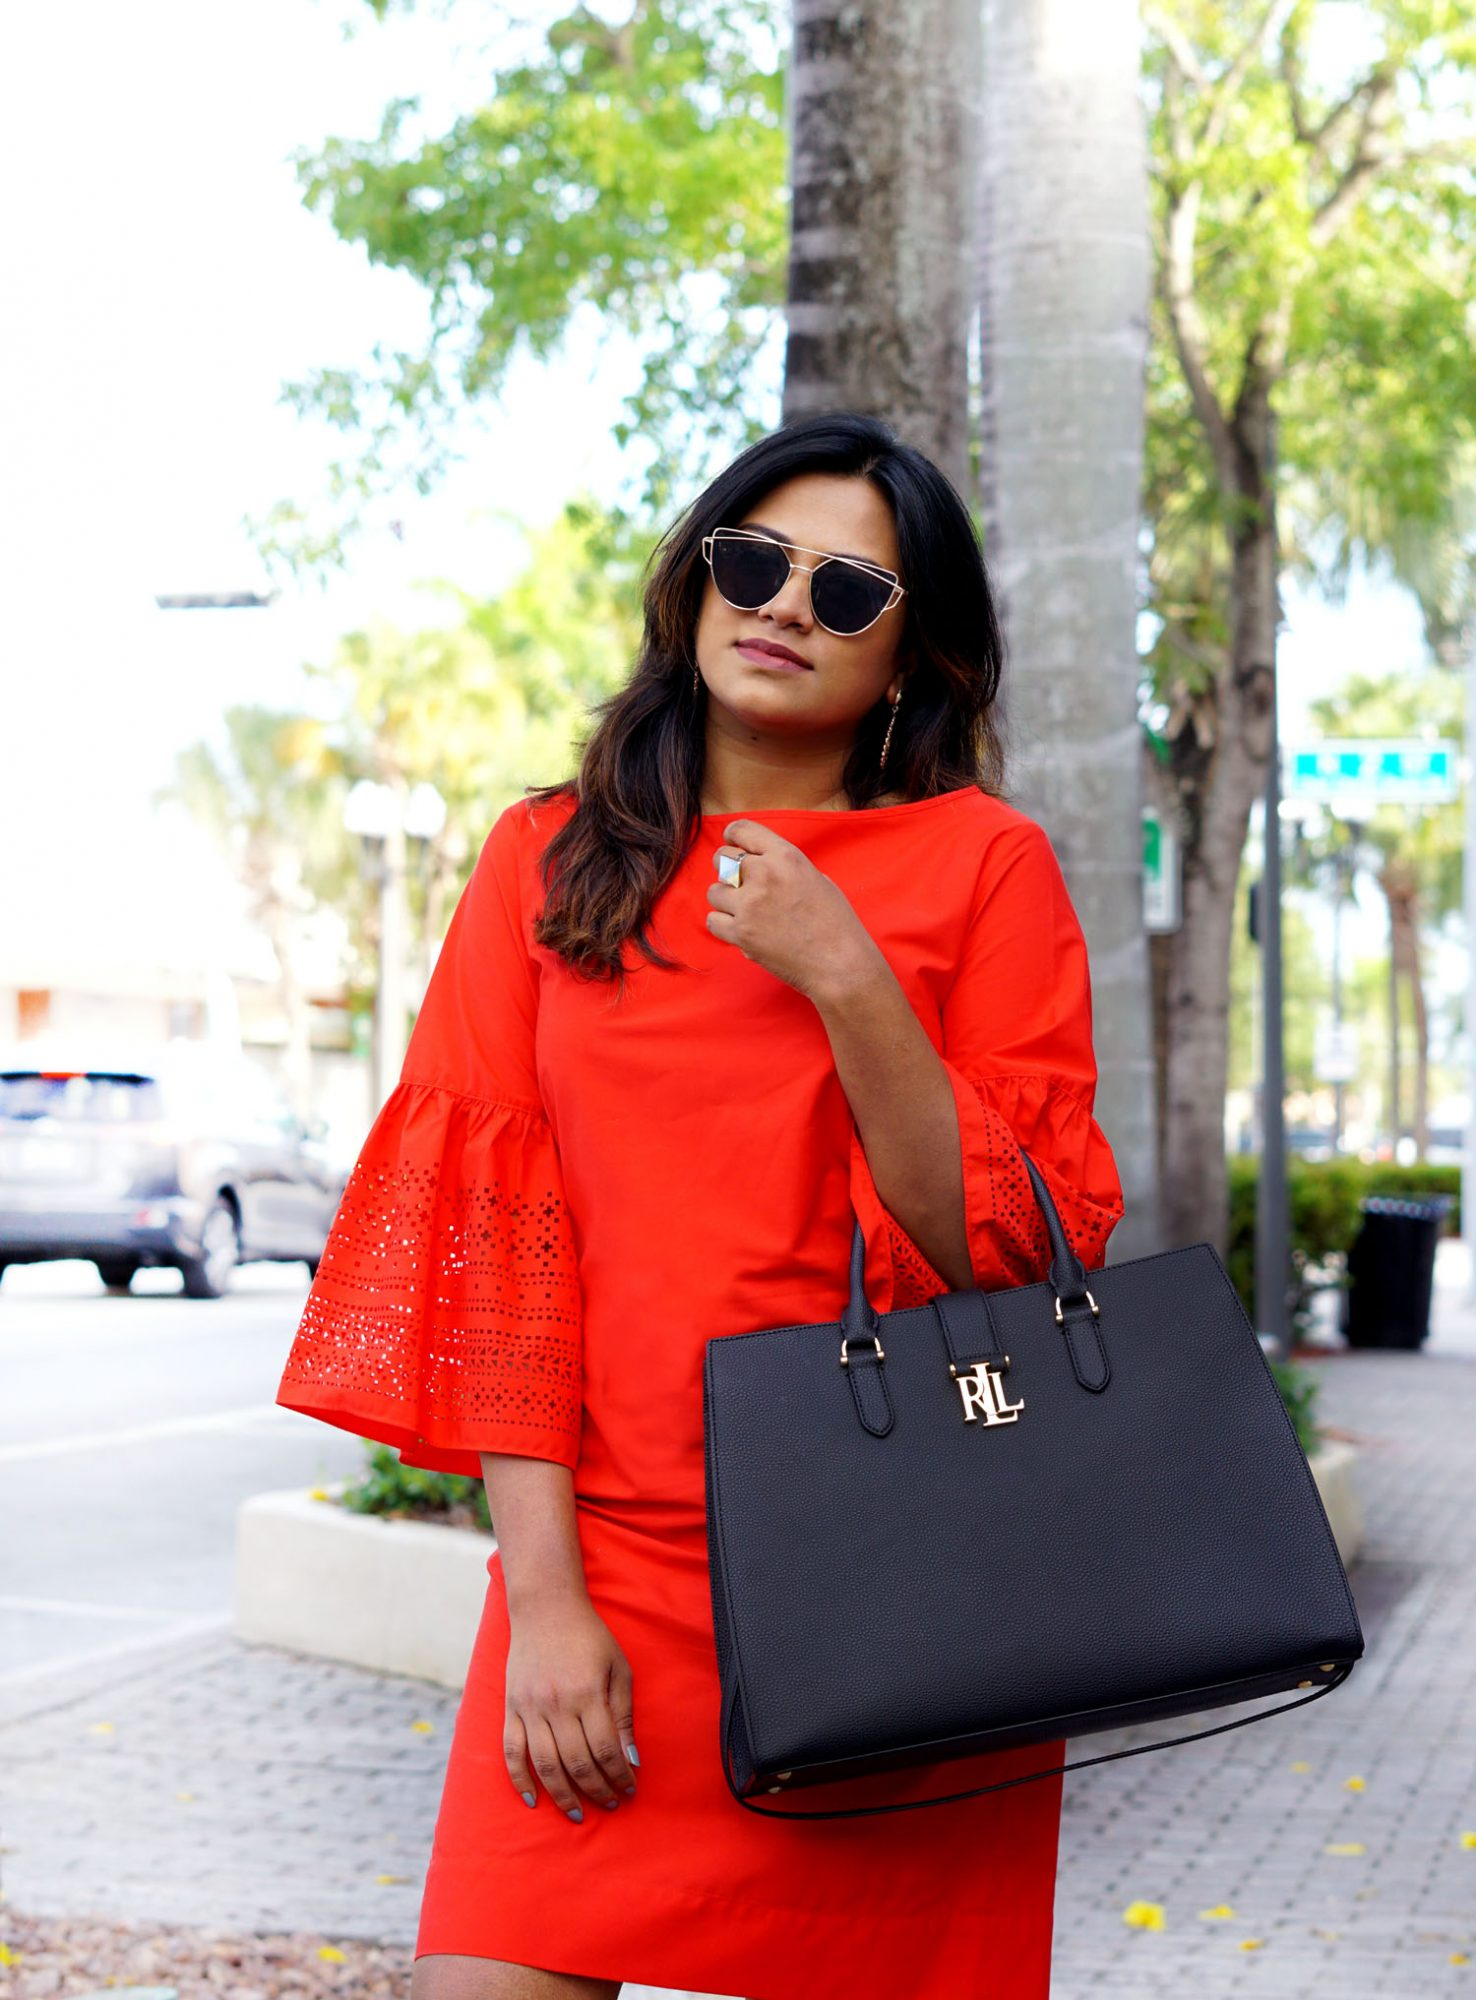 Miami Fashion Lifestyle Blogger Chic Stylista